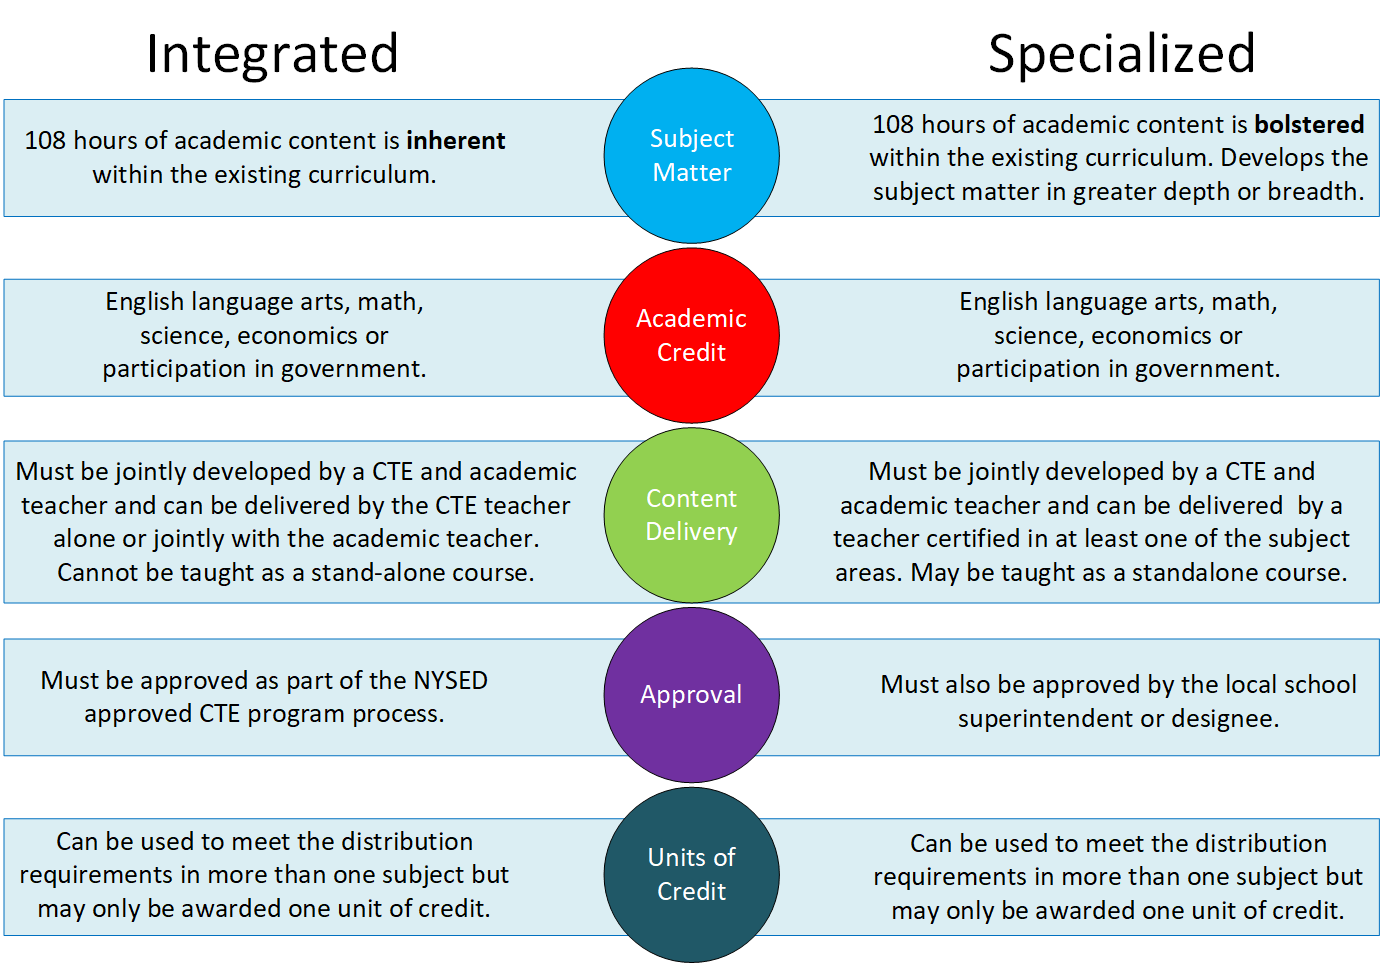 A graphic comparing the differences between integrated and specialized coursework including the characteristics of what they look like in practice.